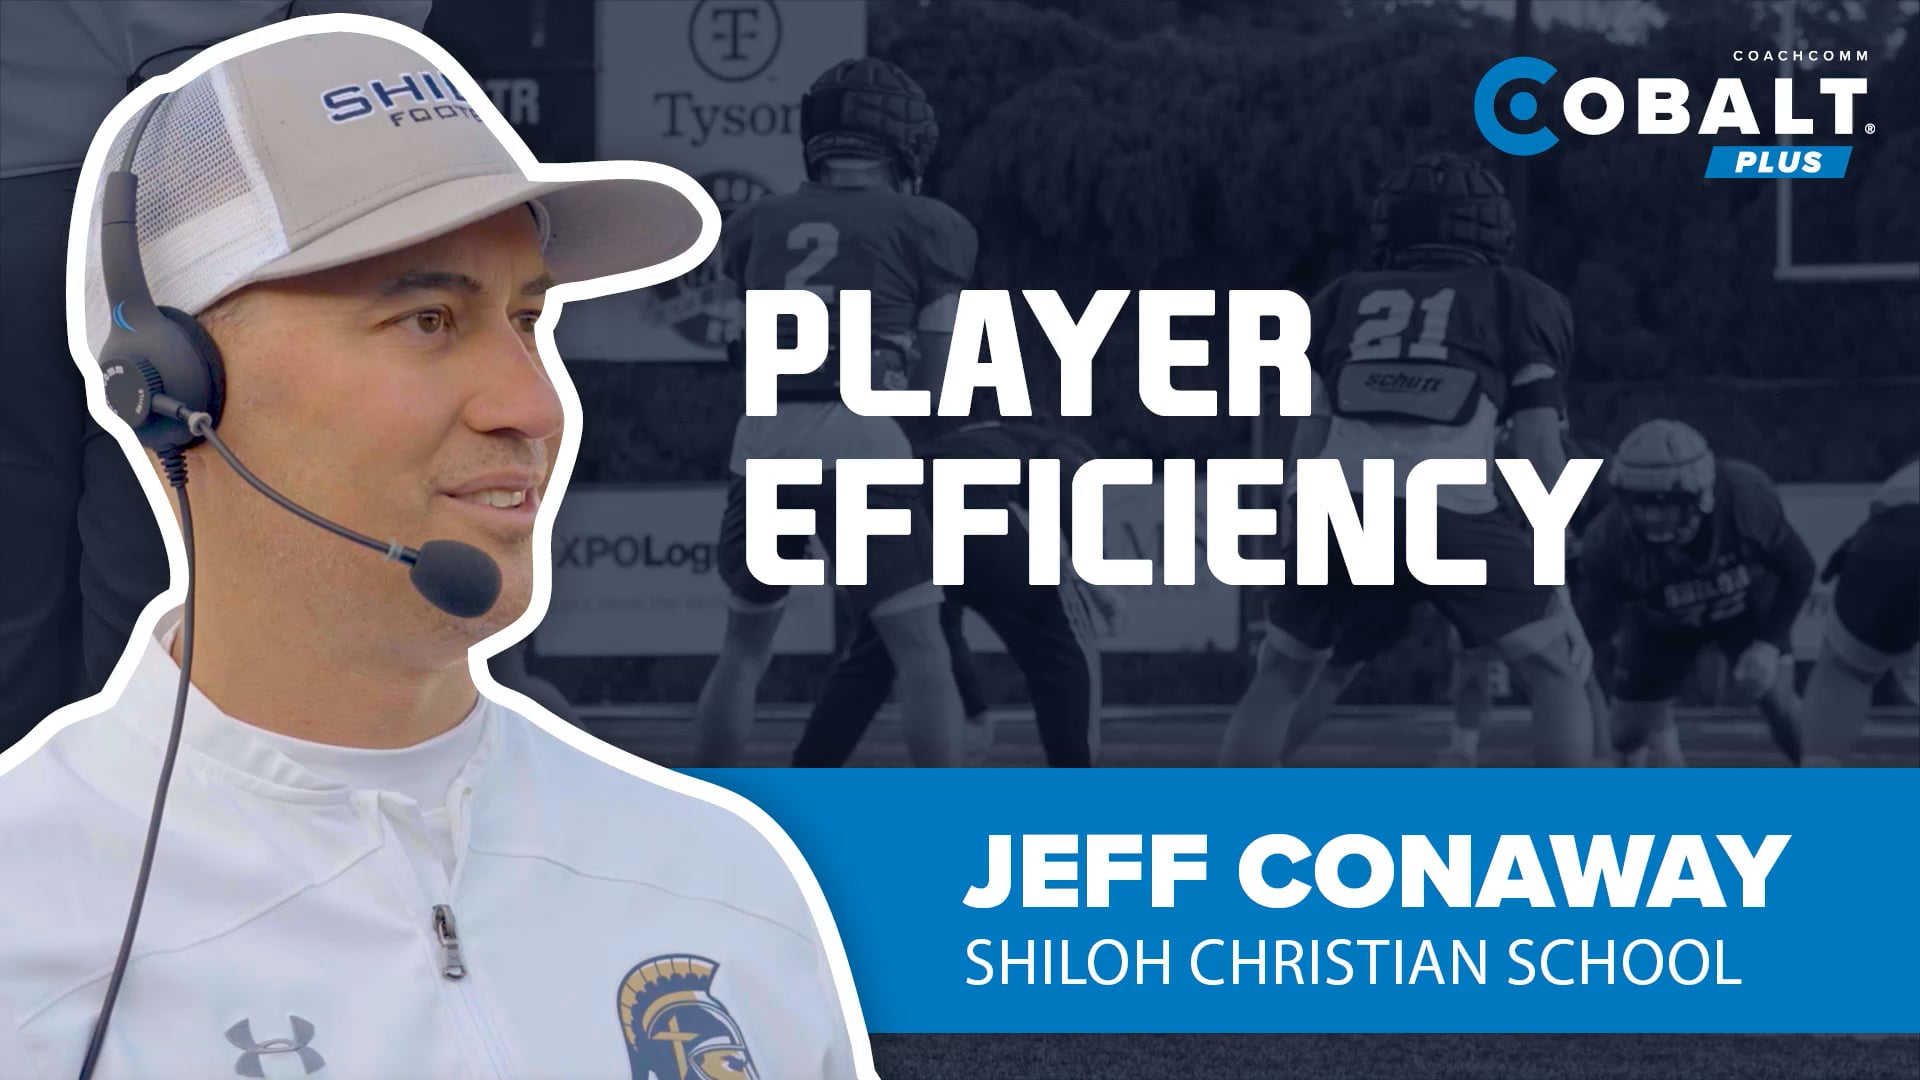 Cobalt PLUS and Player Efficiency